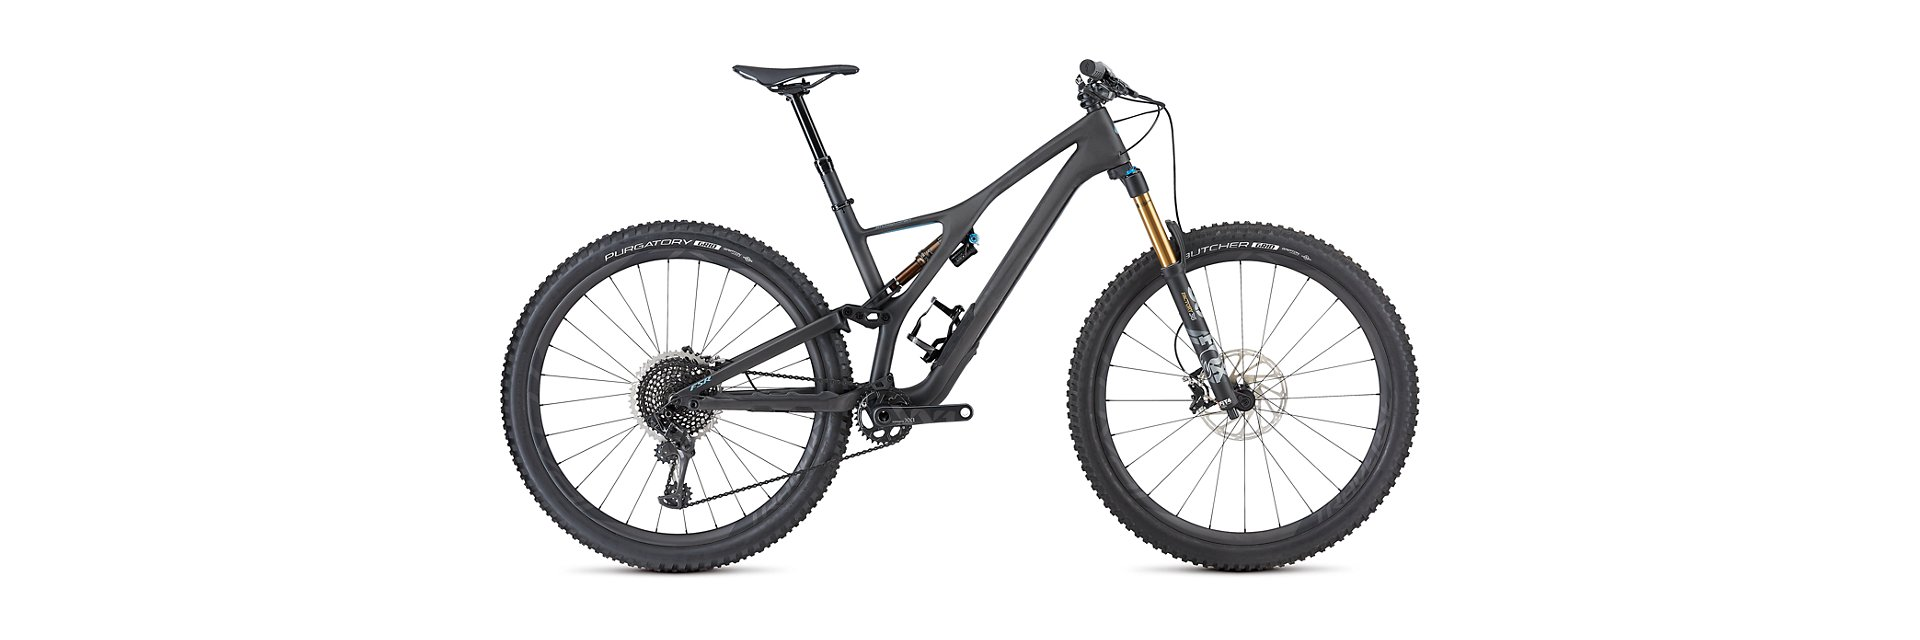 Specialized 2019 S-Works Stumpjumper 29